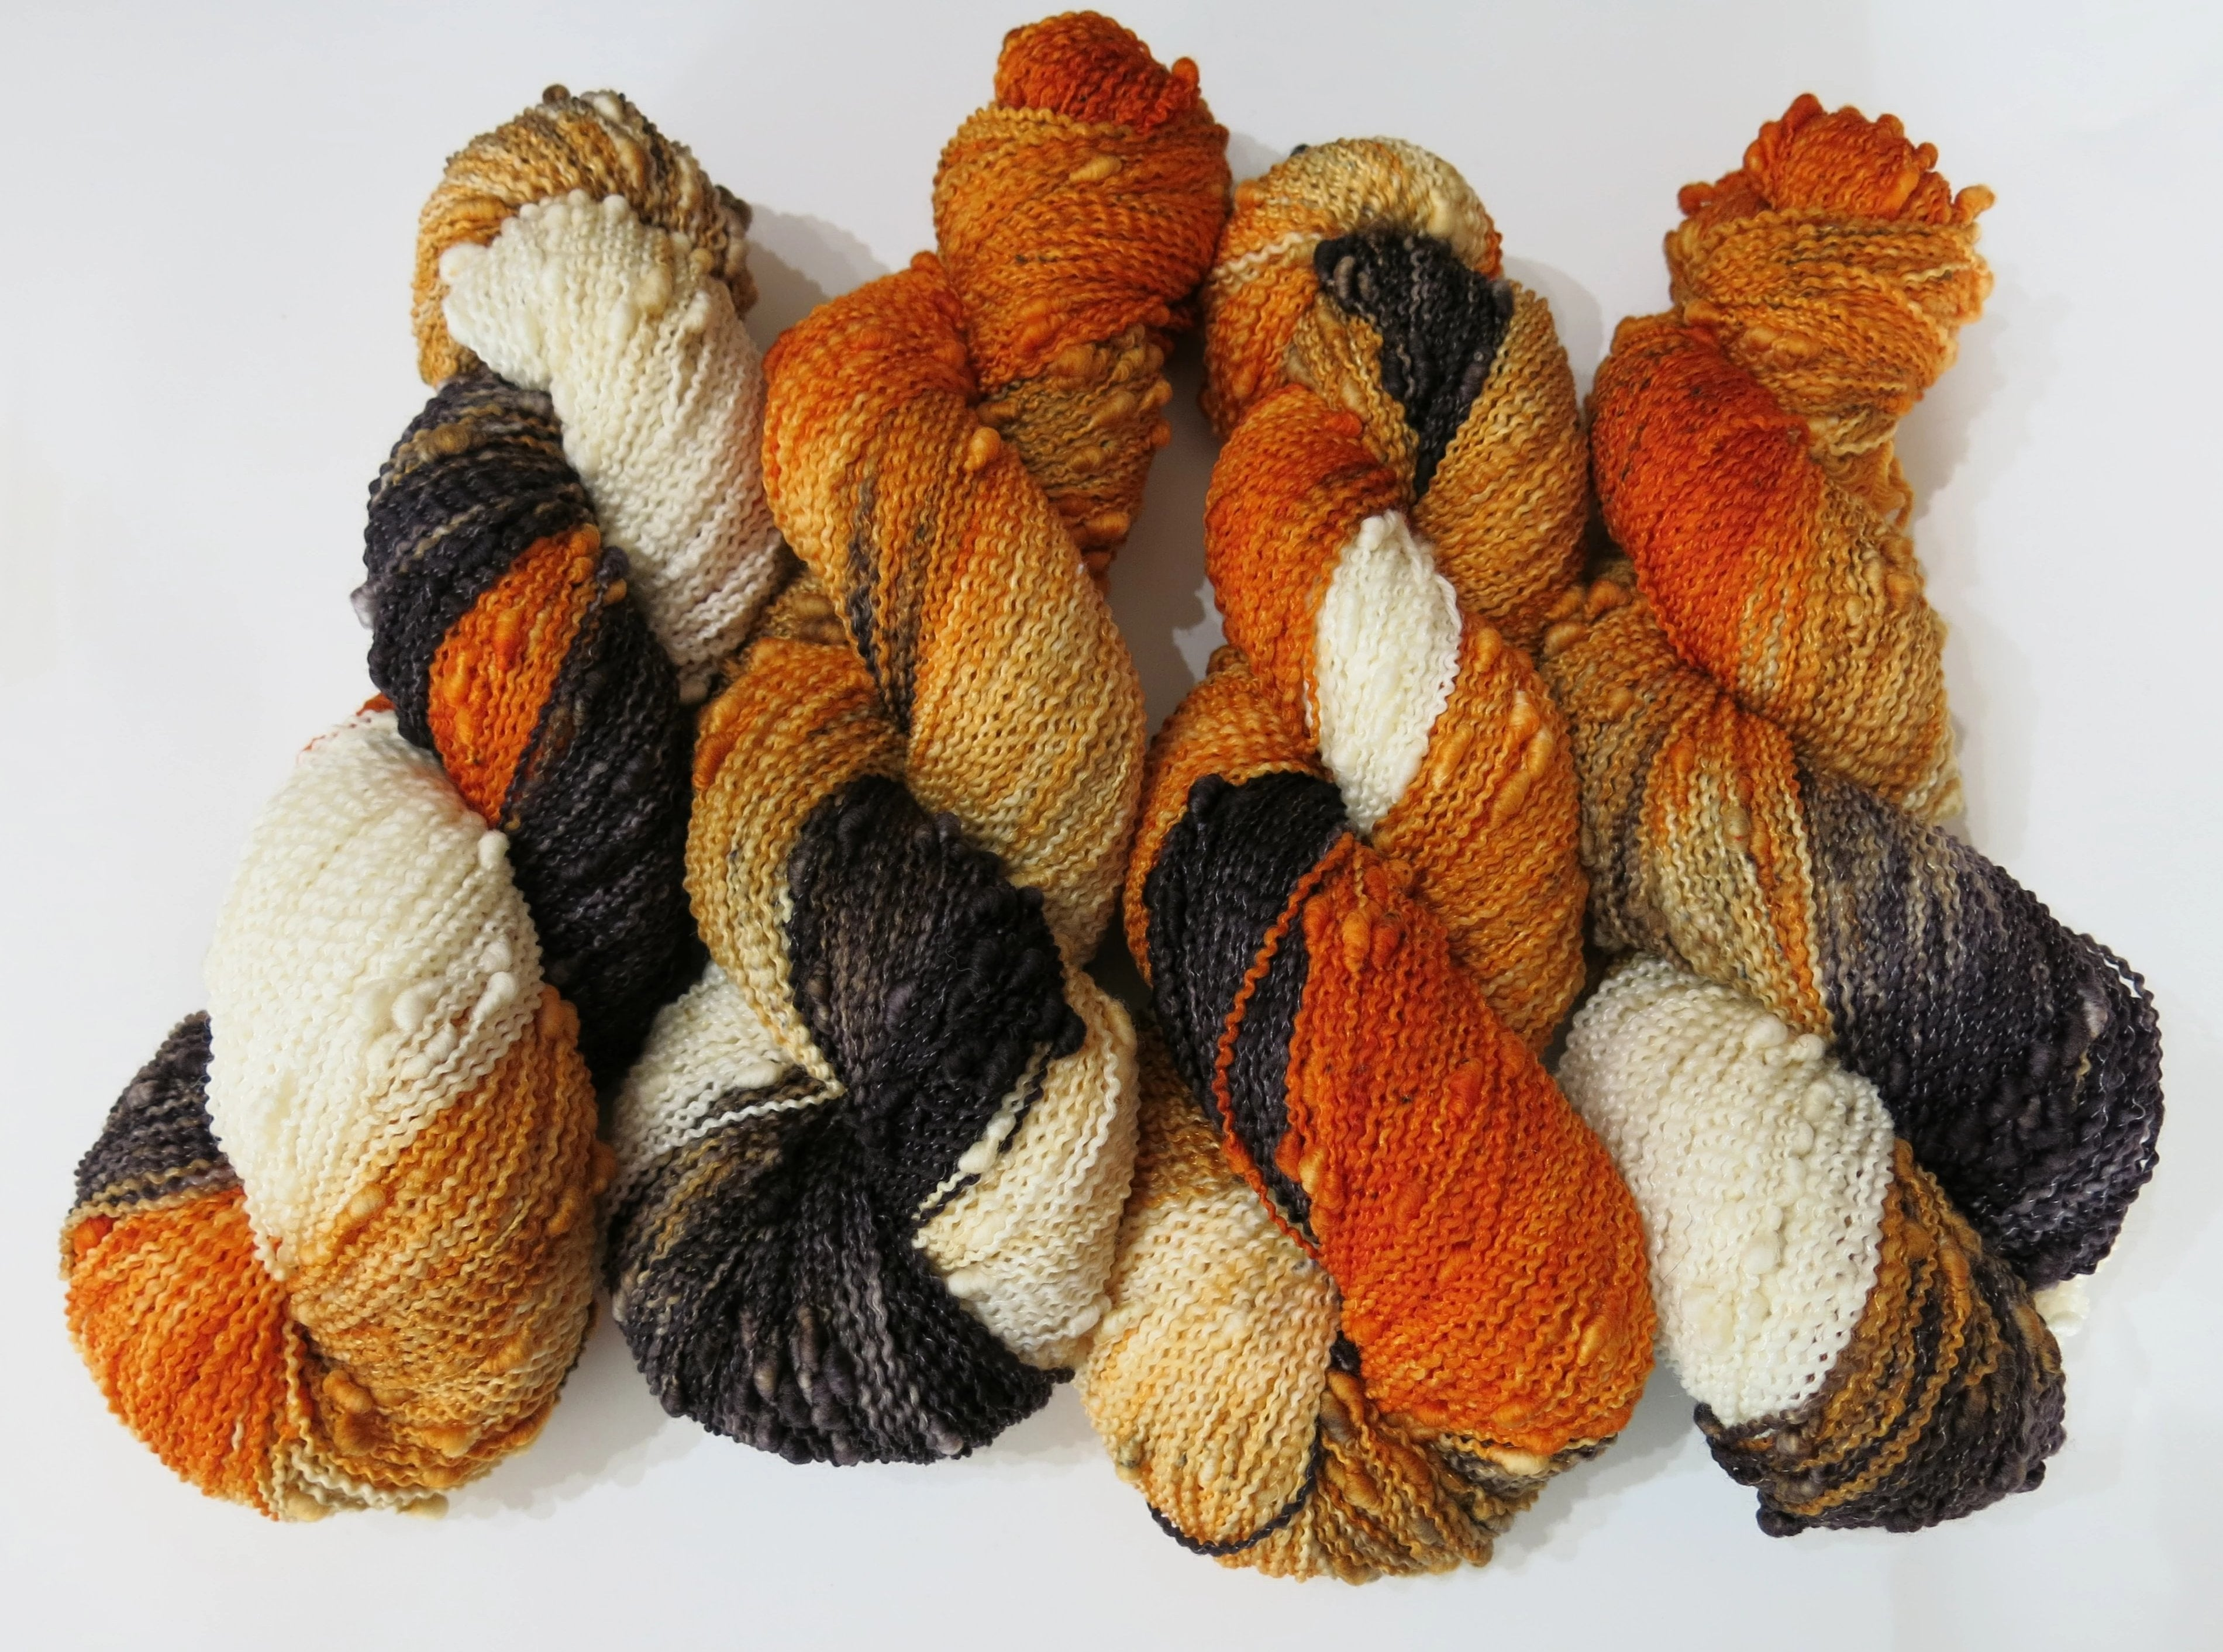 fox colored textured slub merino skeins for knitting and crochet